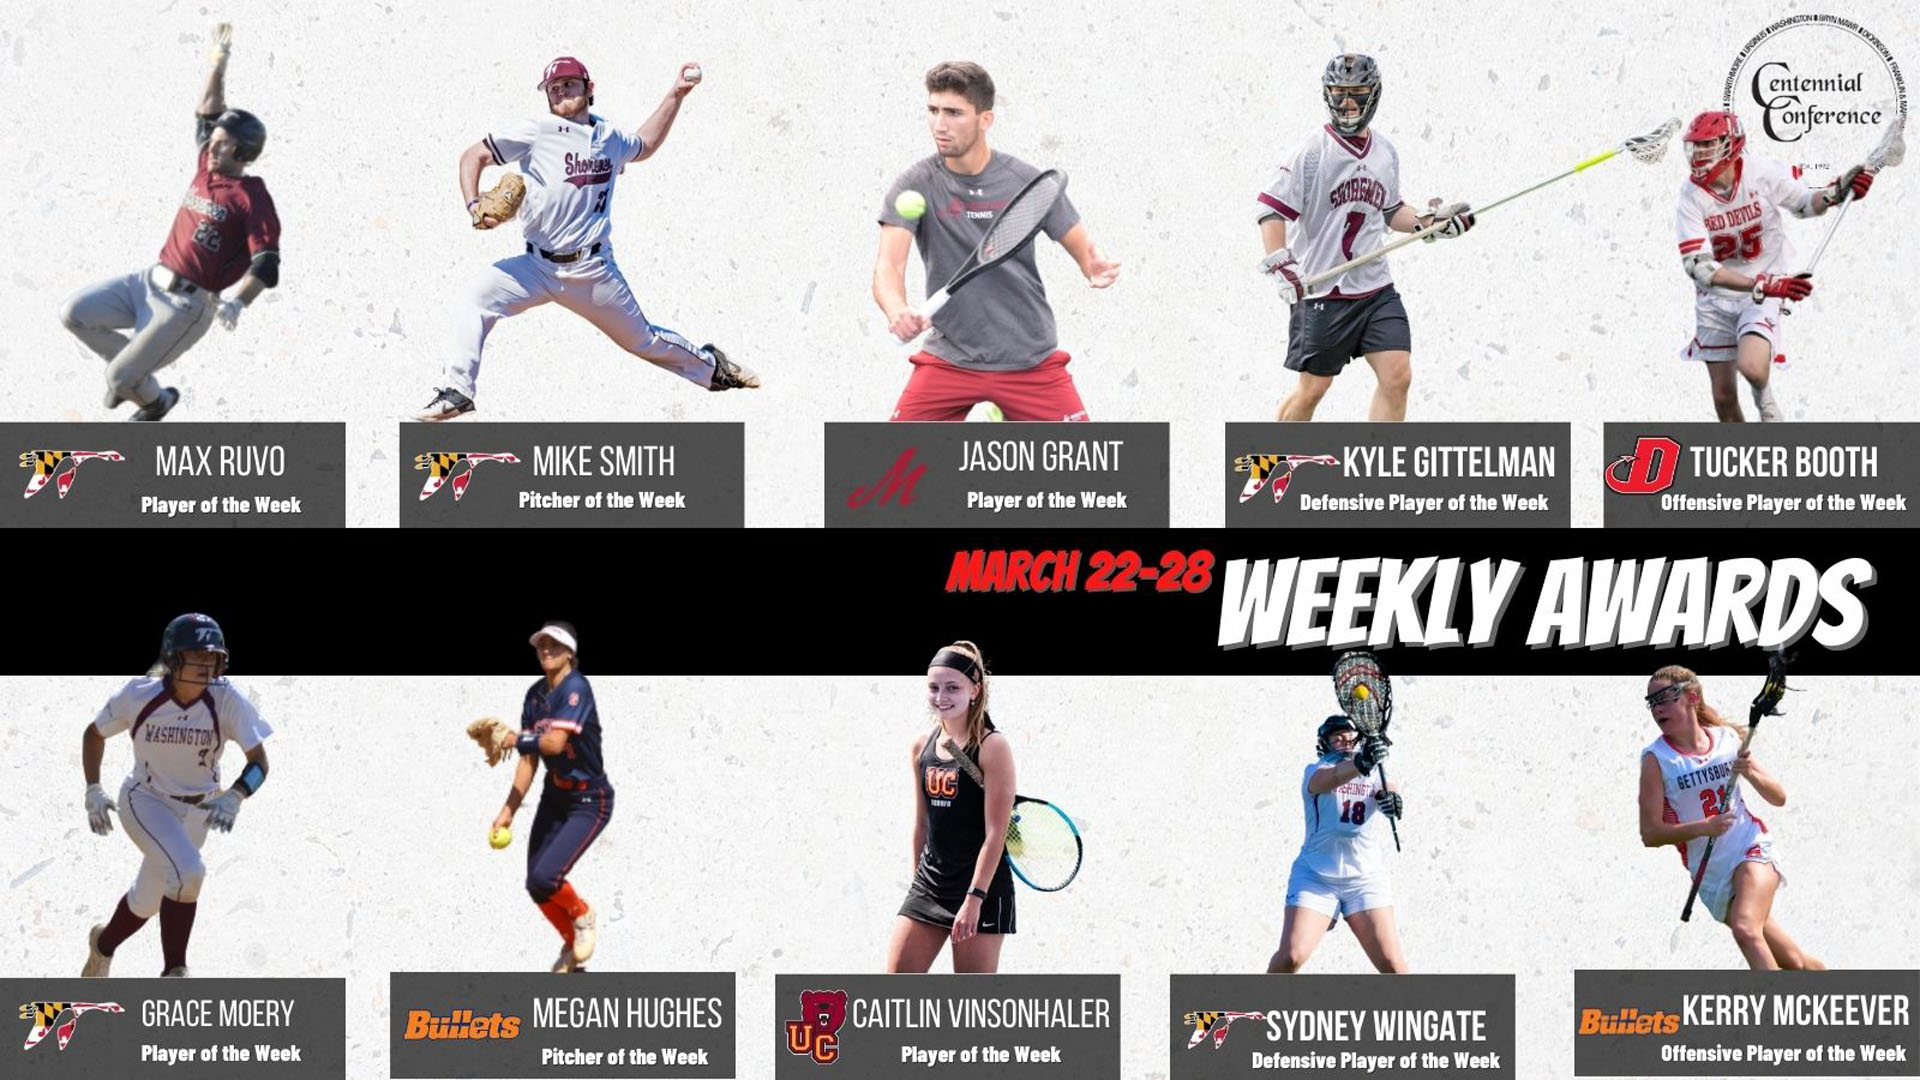 Centennial Conference Athletes of the Week - March 22-28